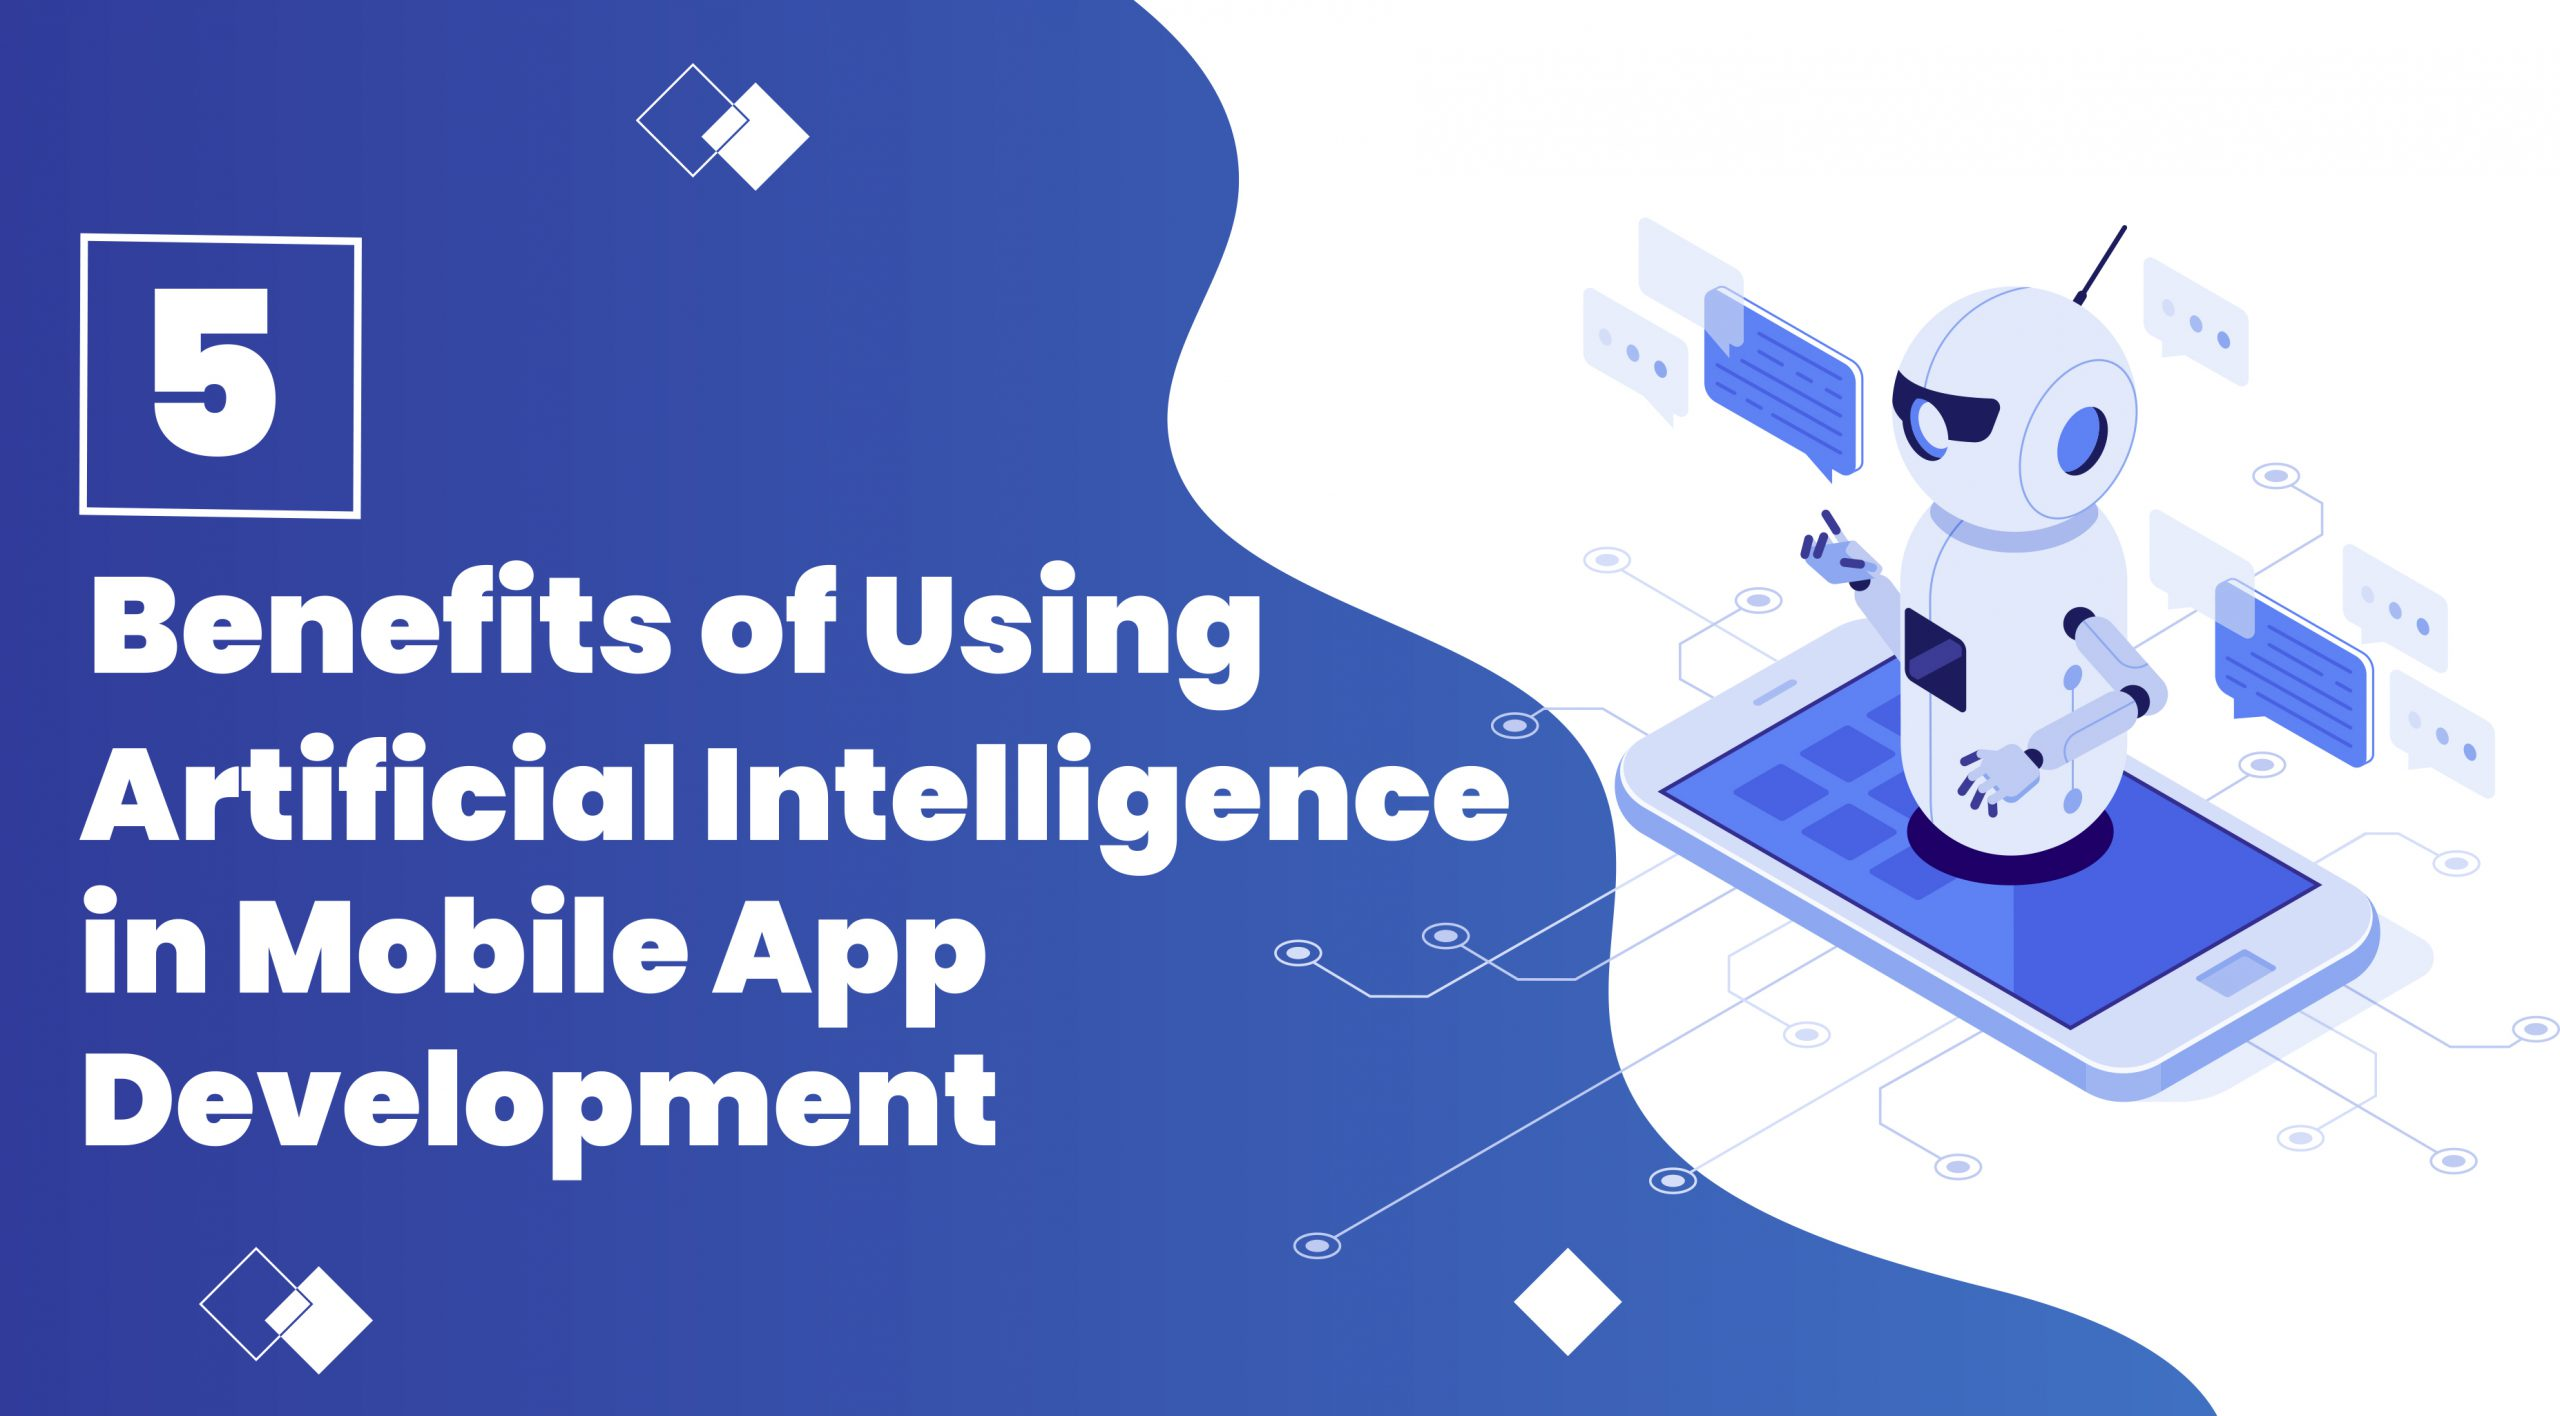 5-benefits-of-using-artificial-intelligence-in-mobile-app-development